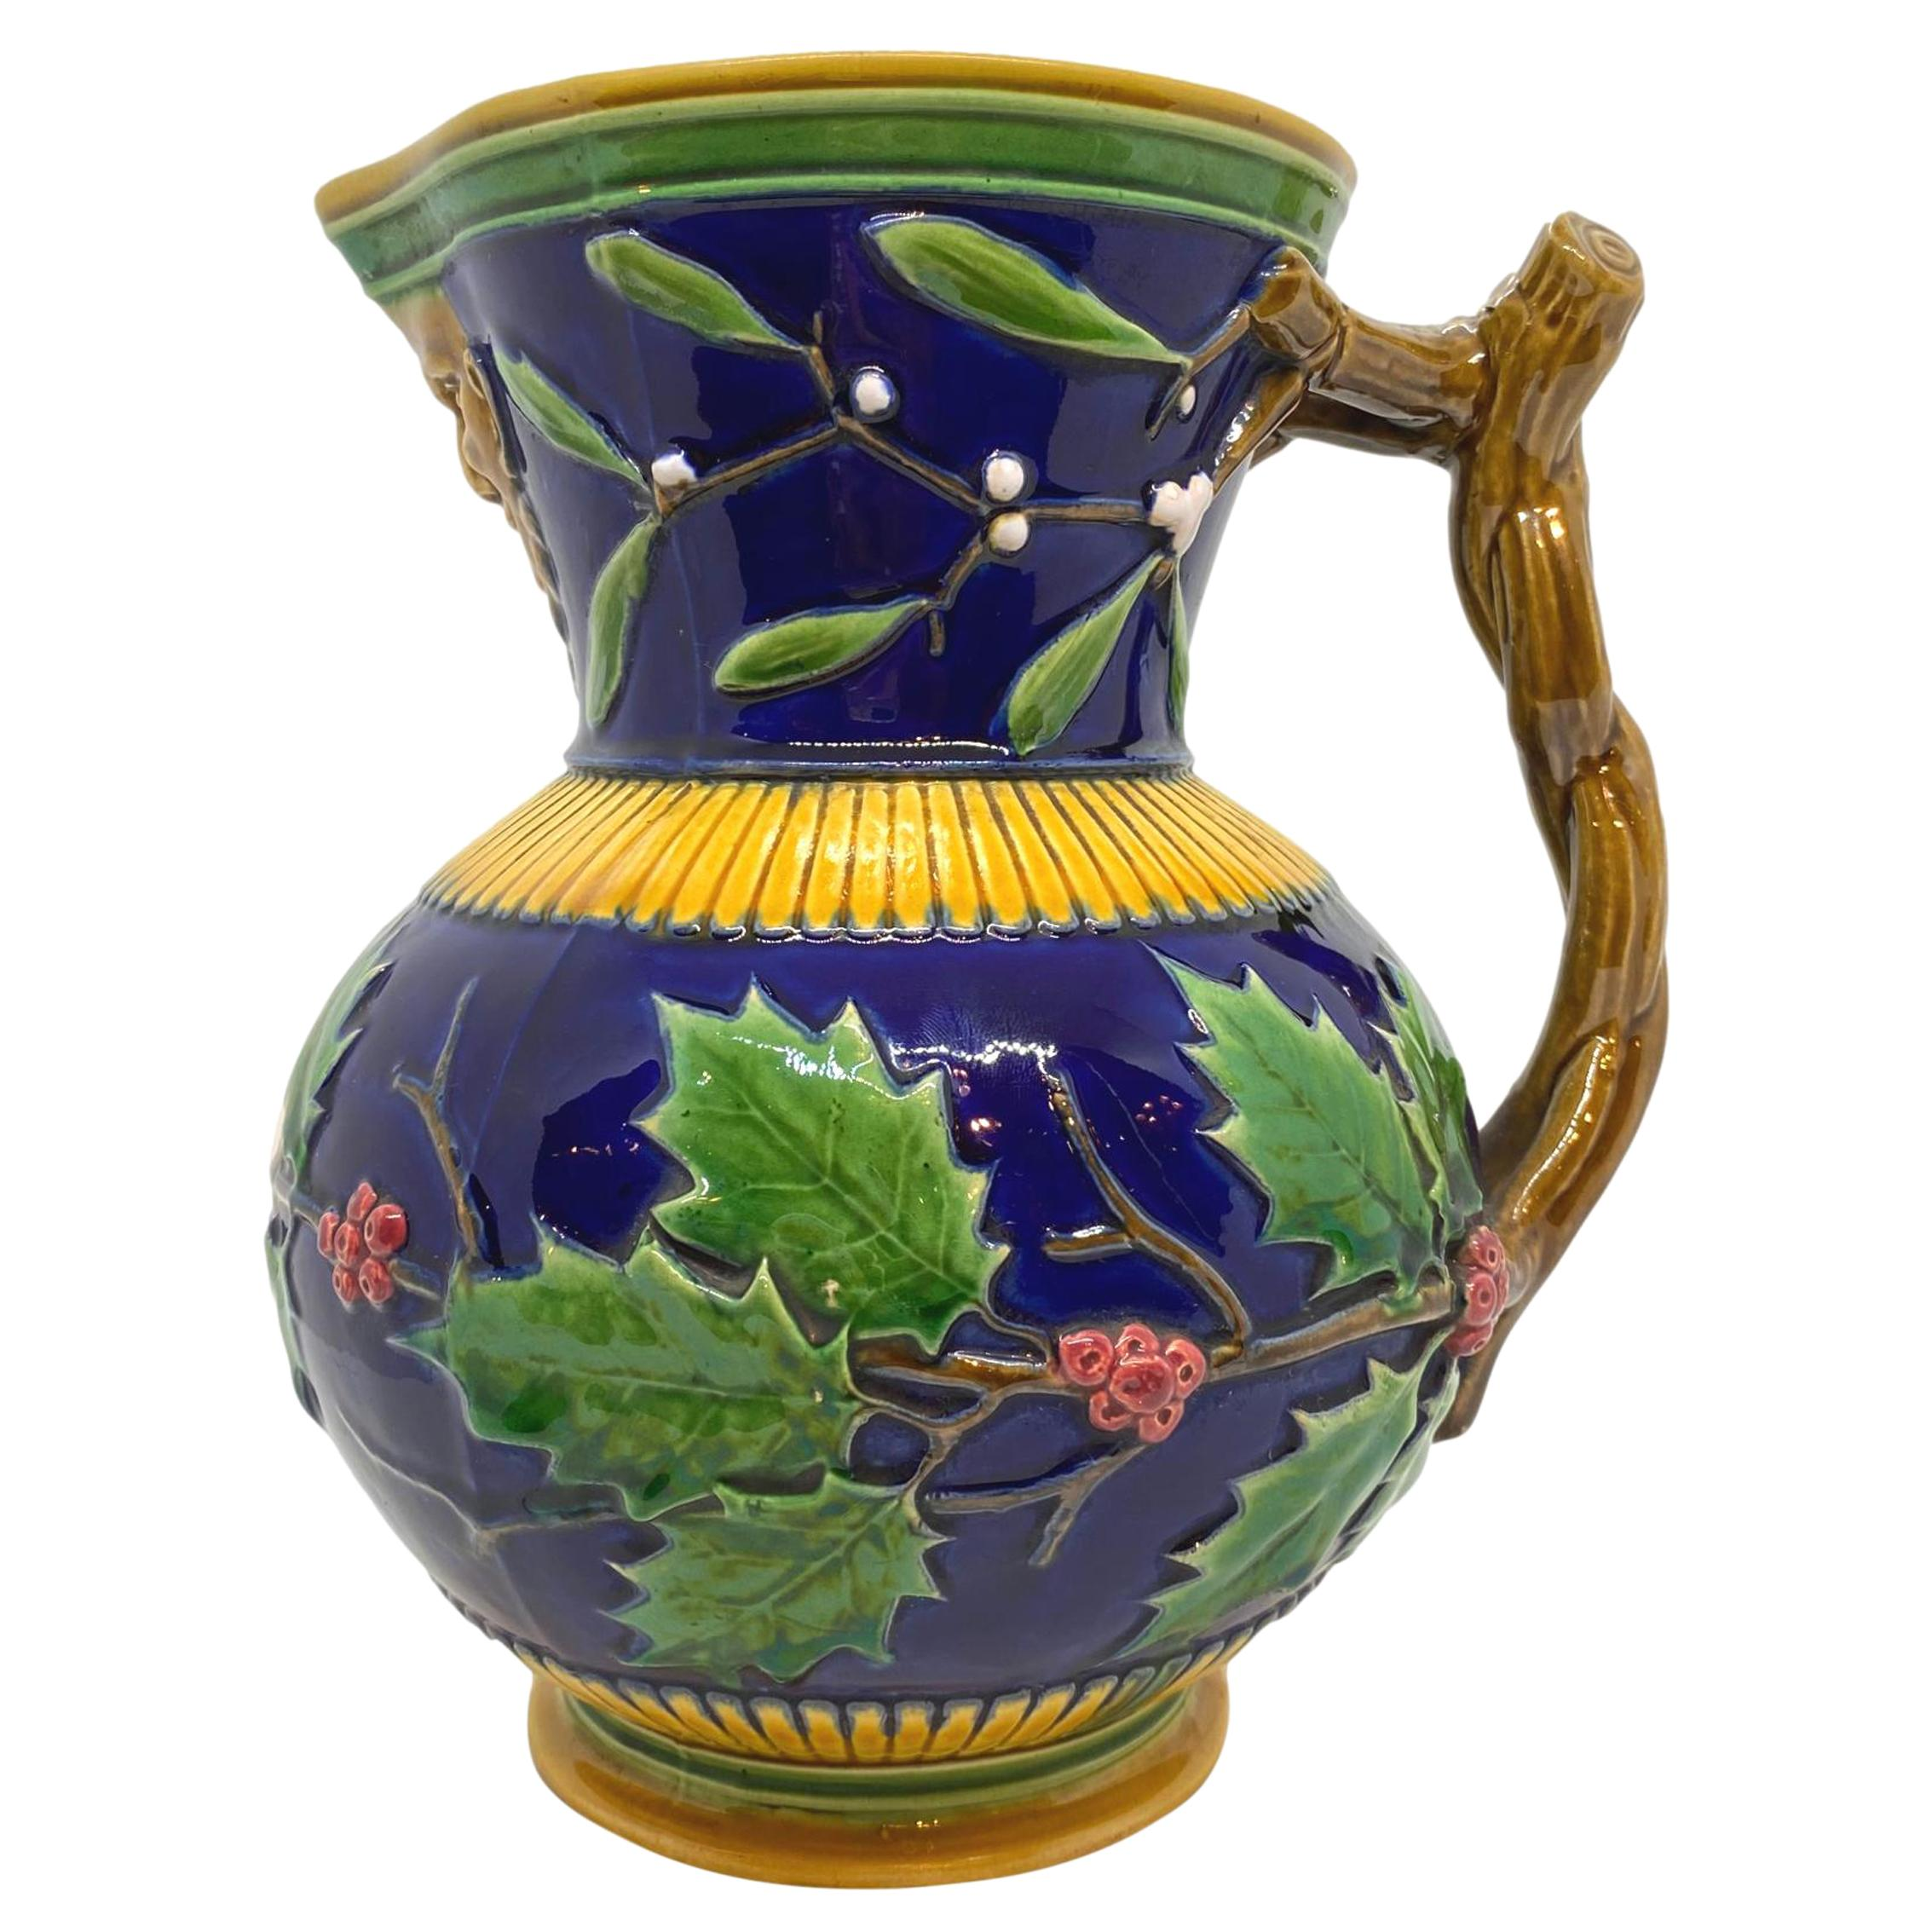 Minton Majolica Large Christmas Wine Ewer with Bacchus Mask, Cobalt, Dated 1868